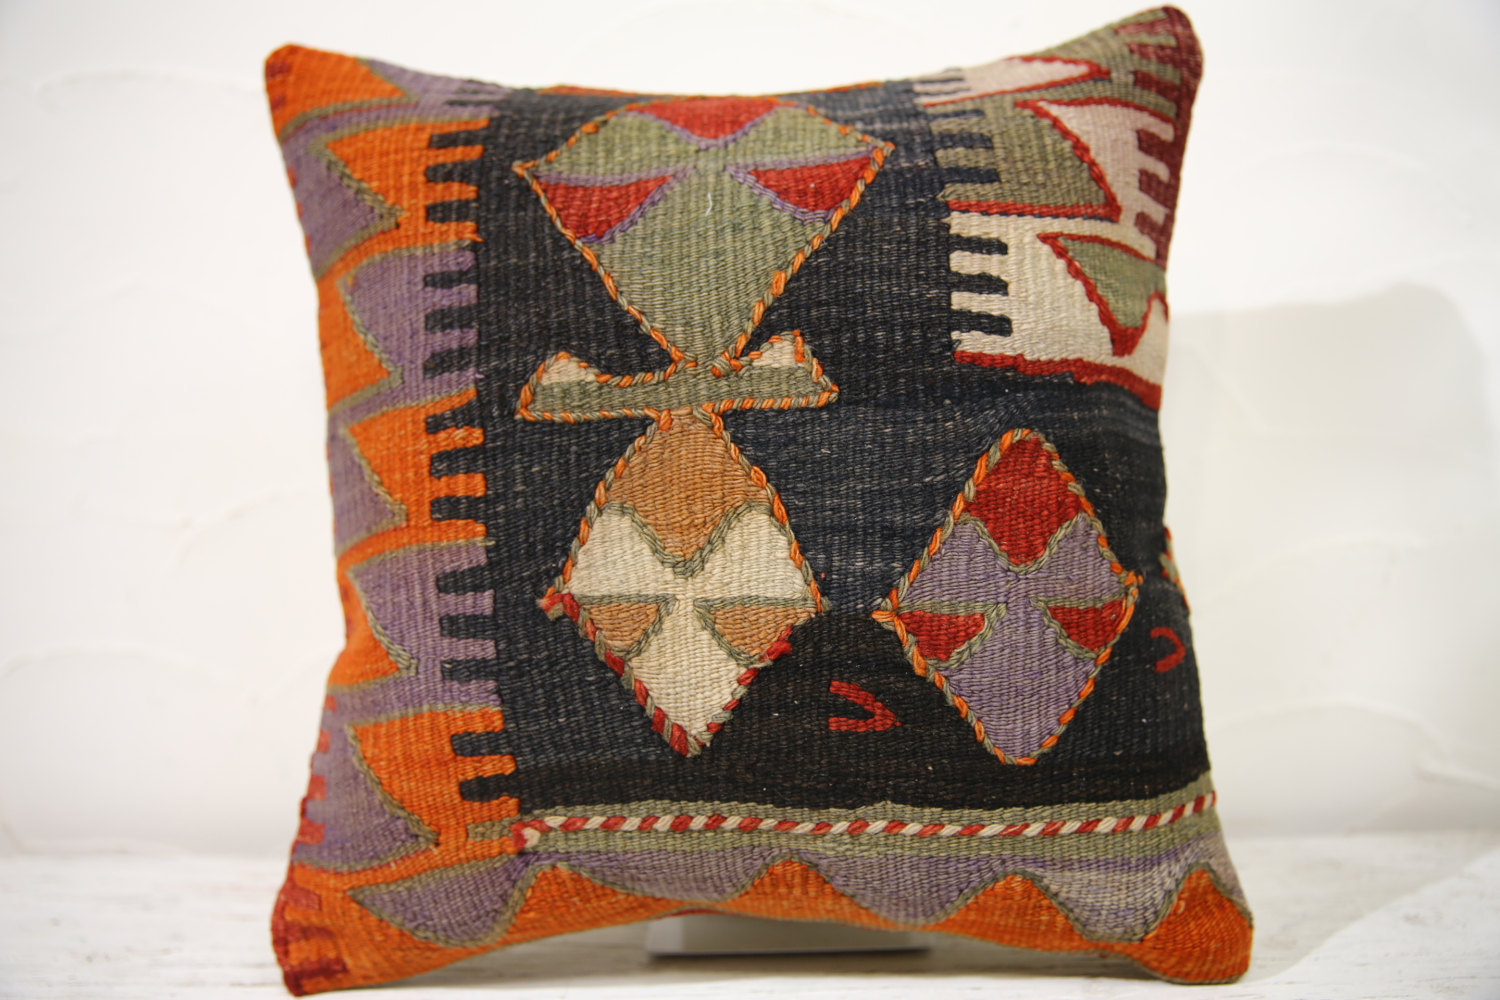 Kilim Pillows | 16x16 | Decorative Pillows | 827 | Accent Pillows,turkish pillow